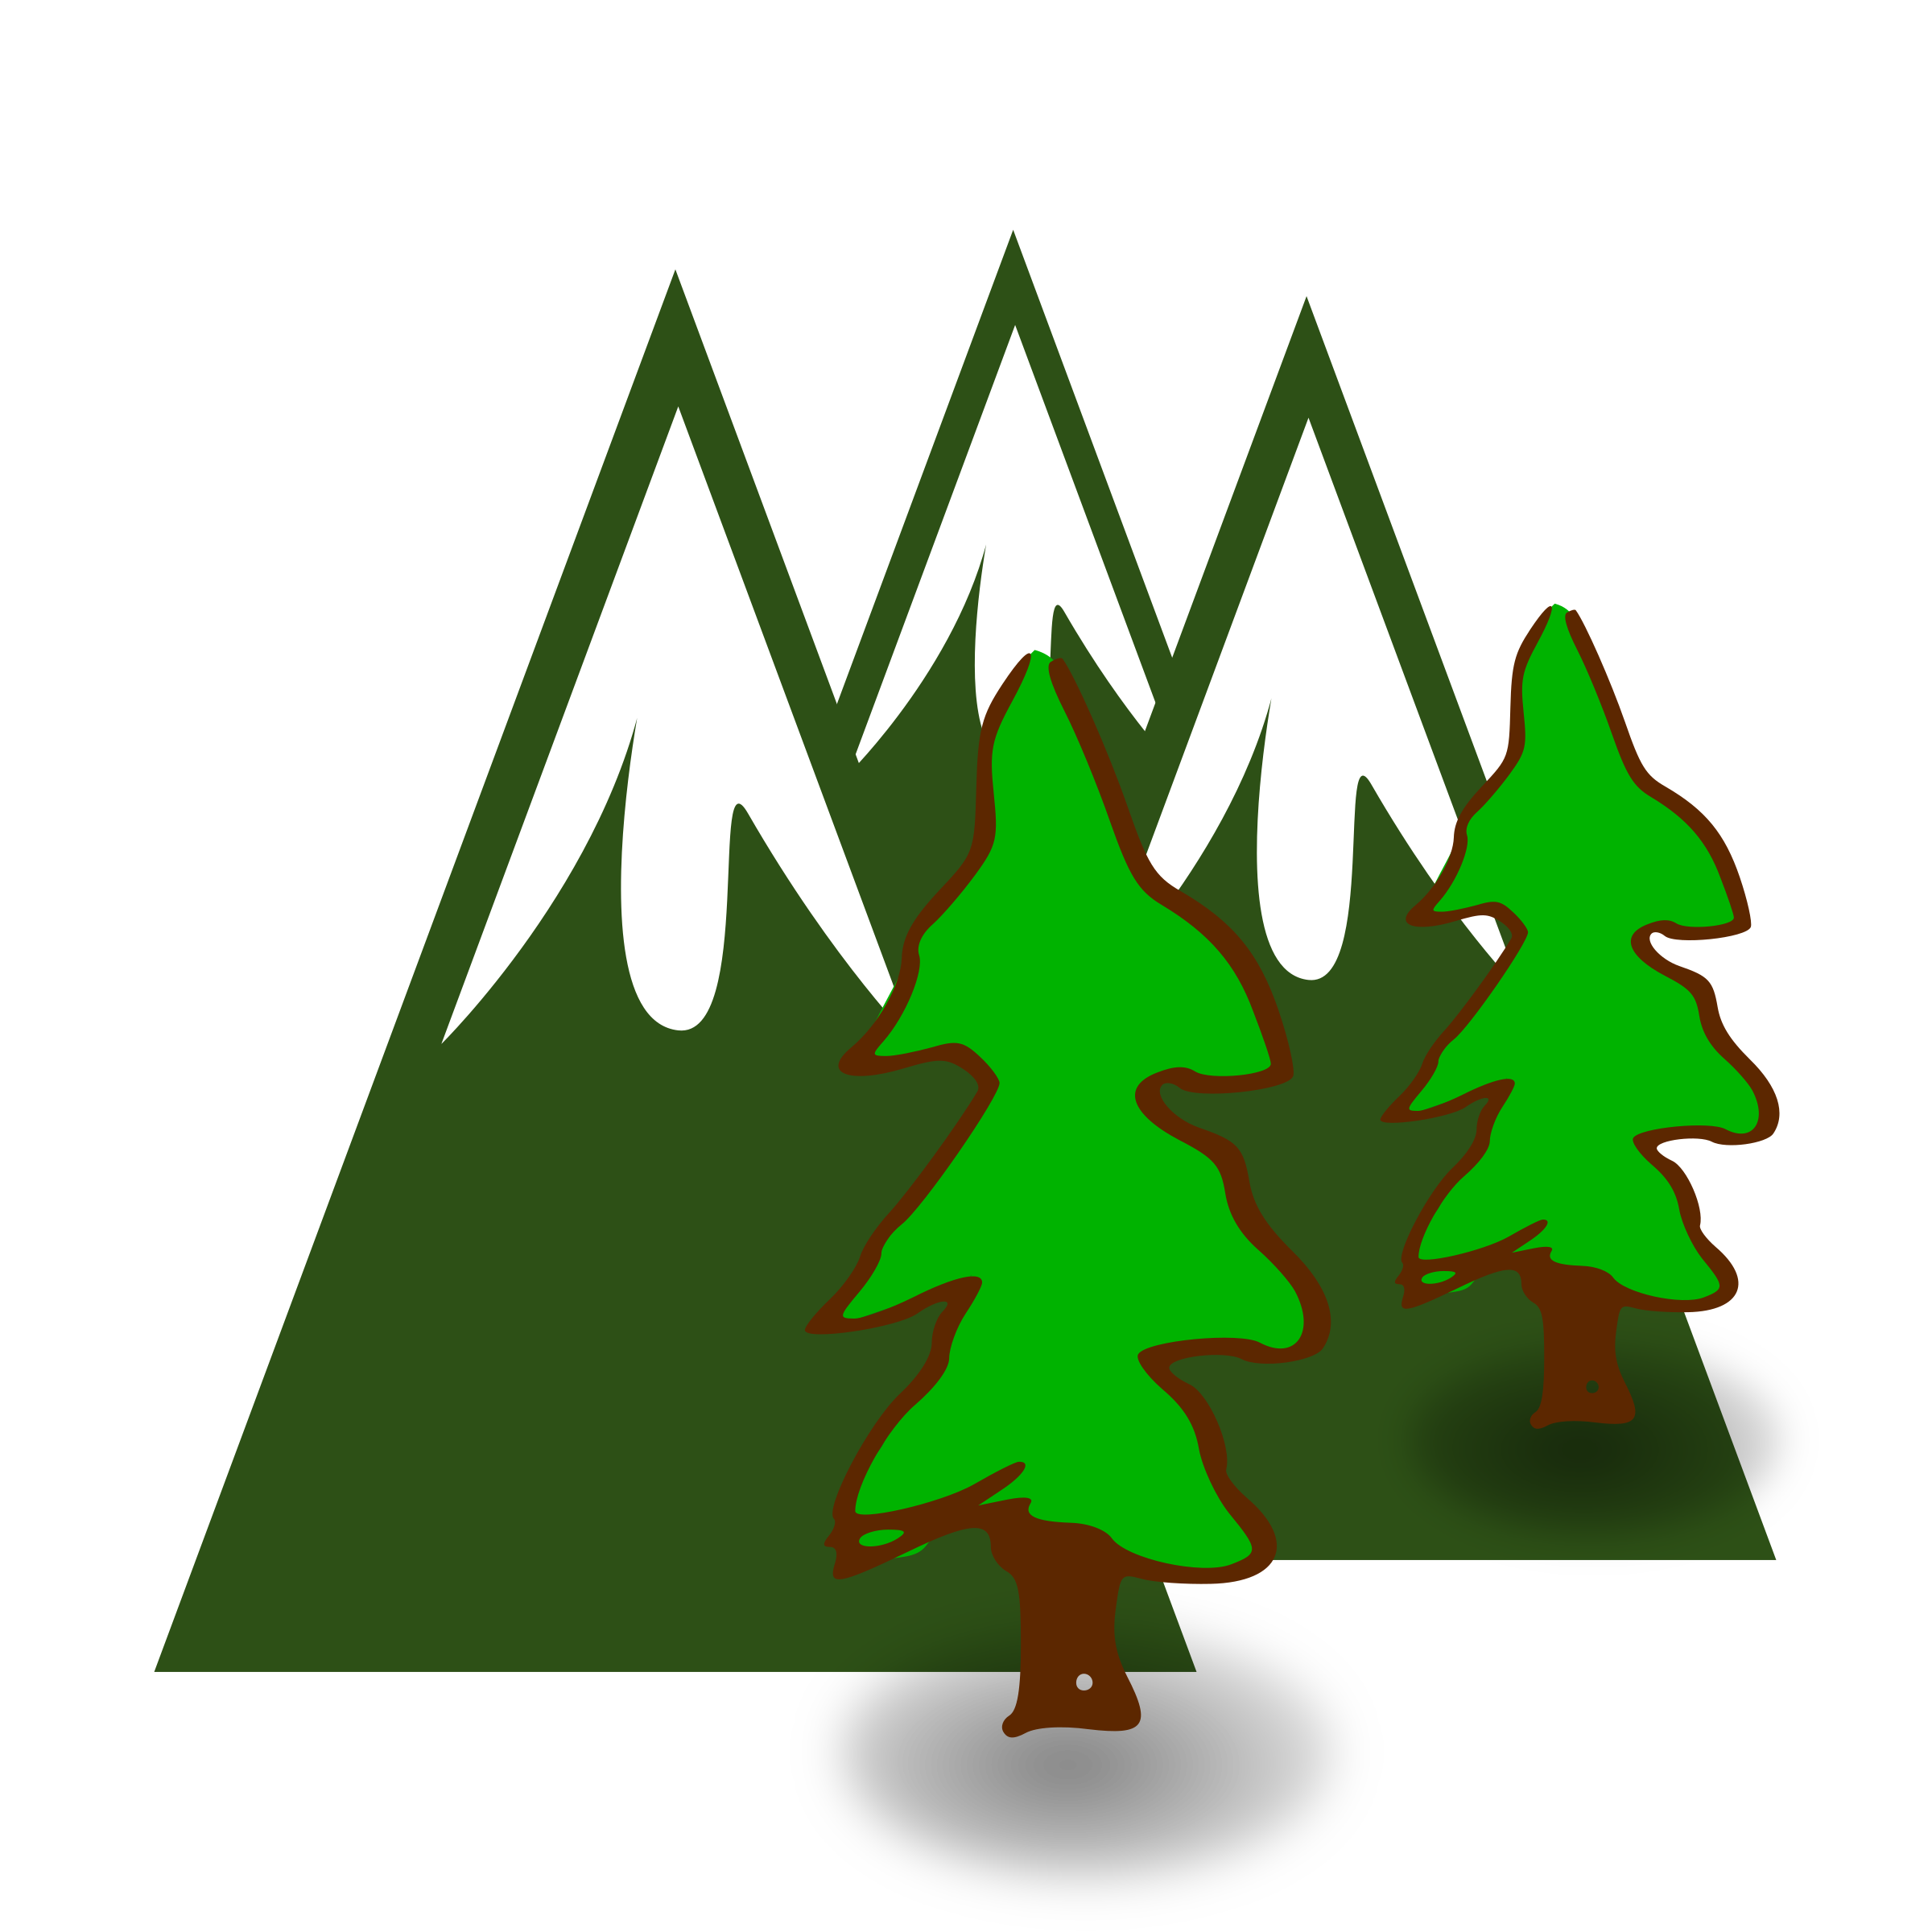 Tree clipart evergreen. Mountains icons png free